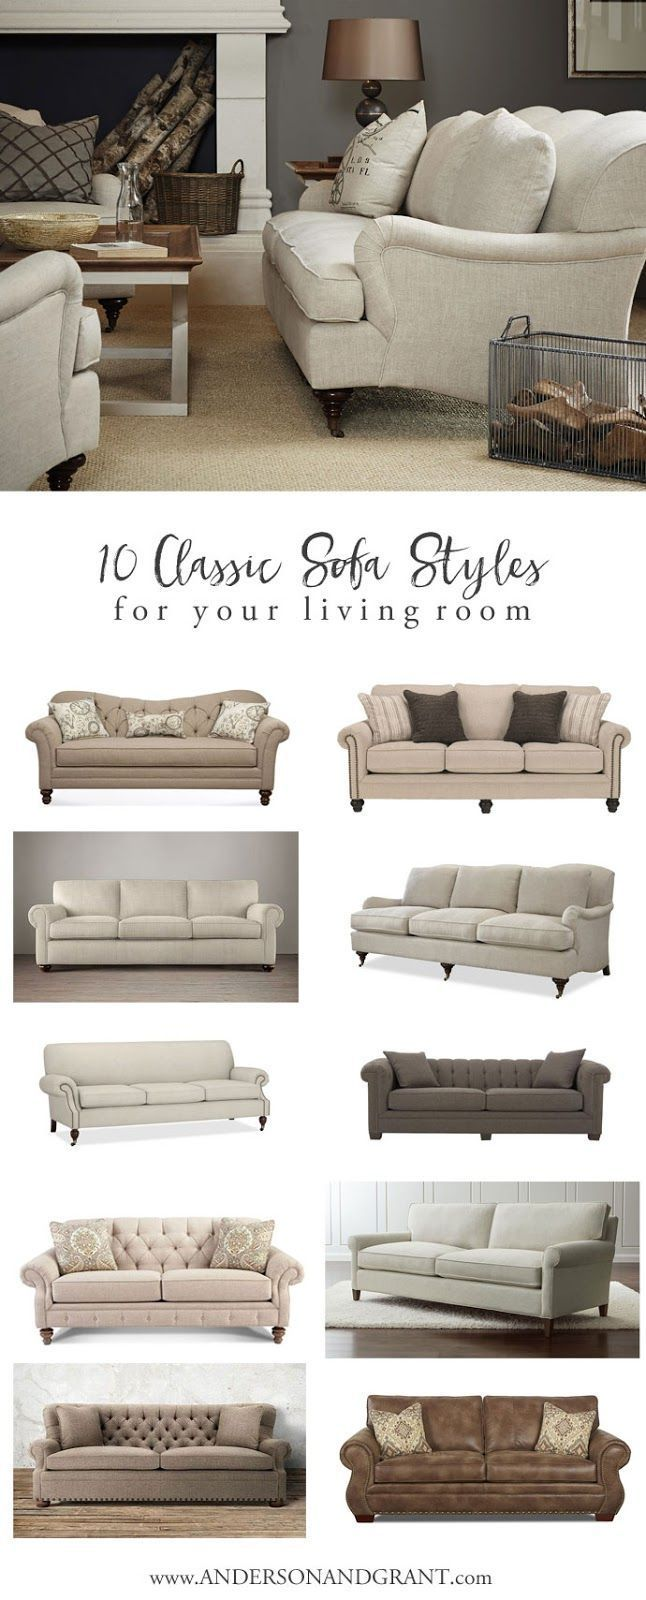 Cost Effective Diy Home Decor Ideas With Images Classic Sofa Styles Living Room Decor On A Budget Classic Sofa